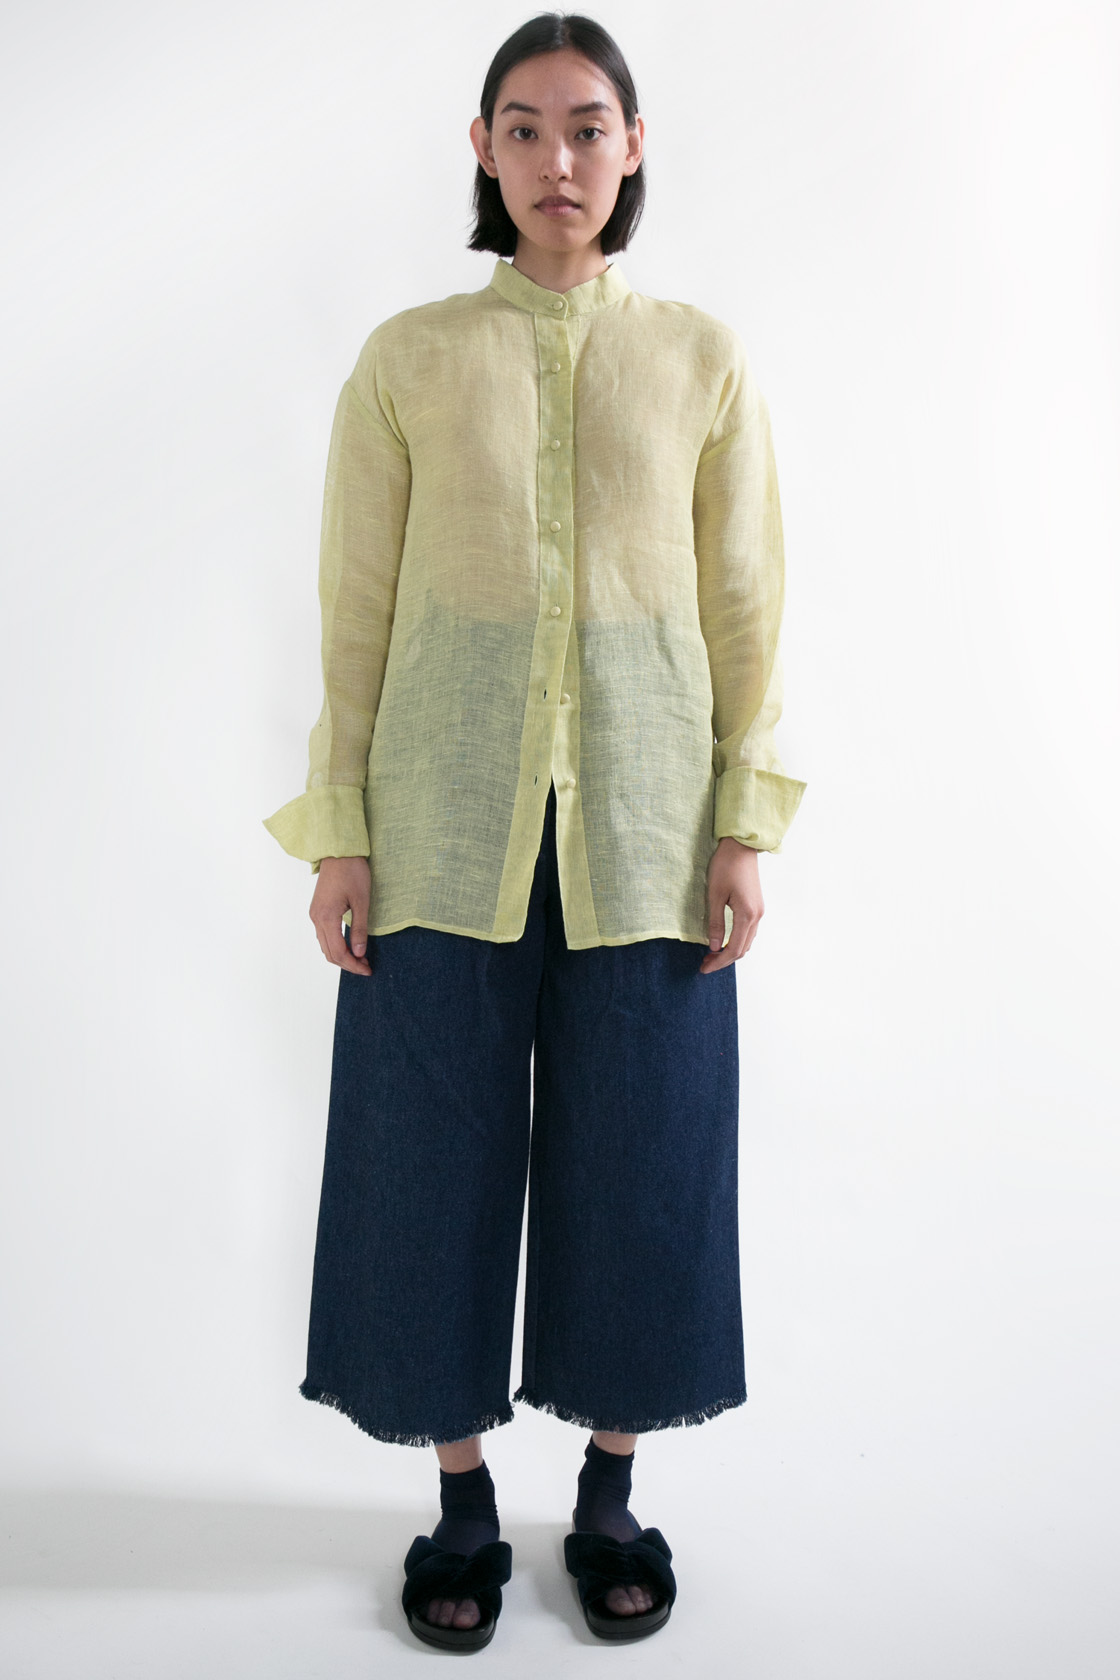 Rusca Linen Button Up  S M  $315